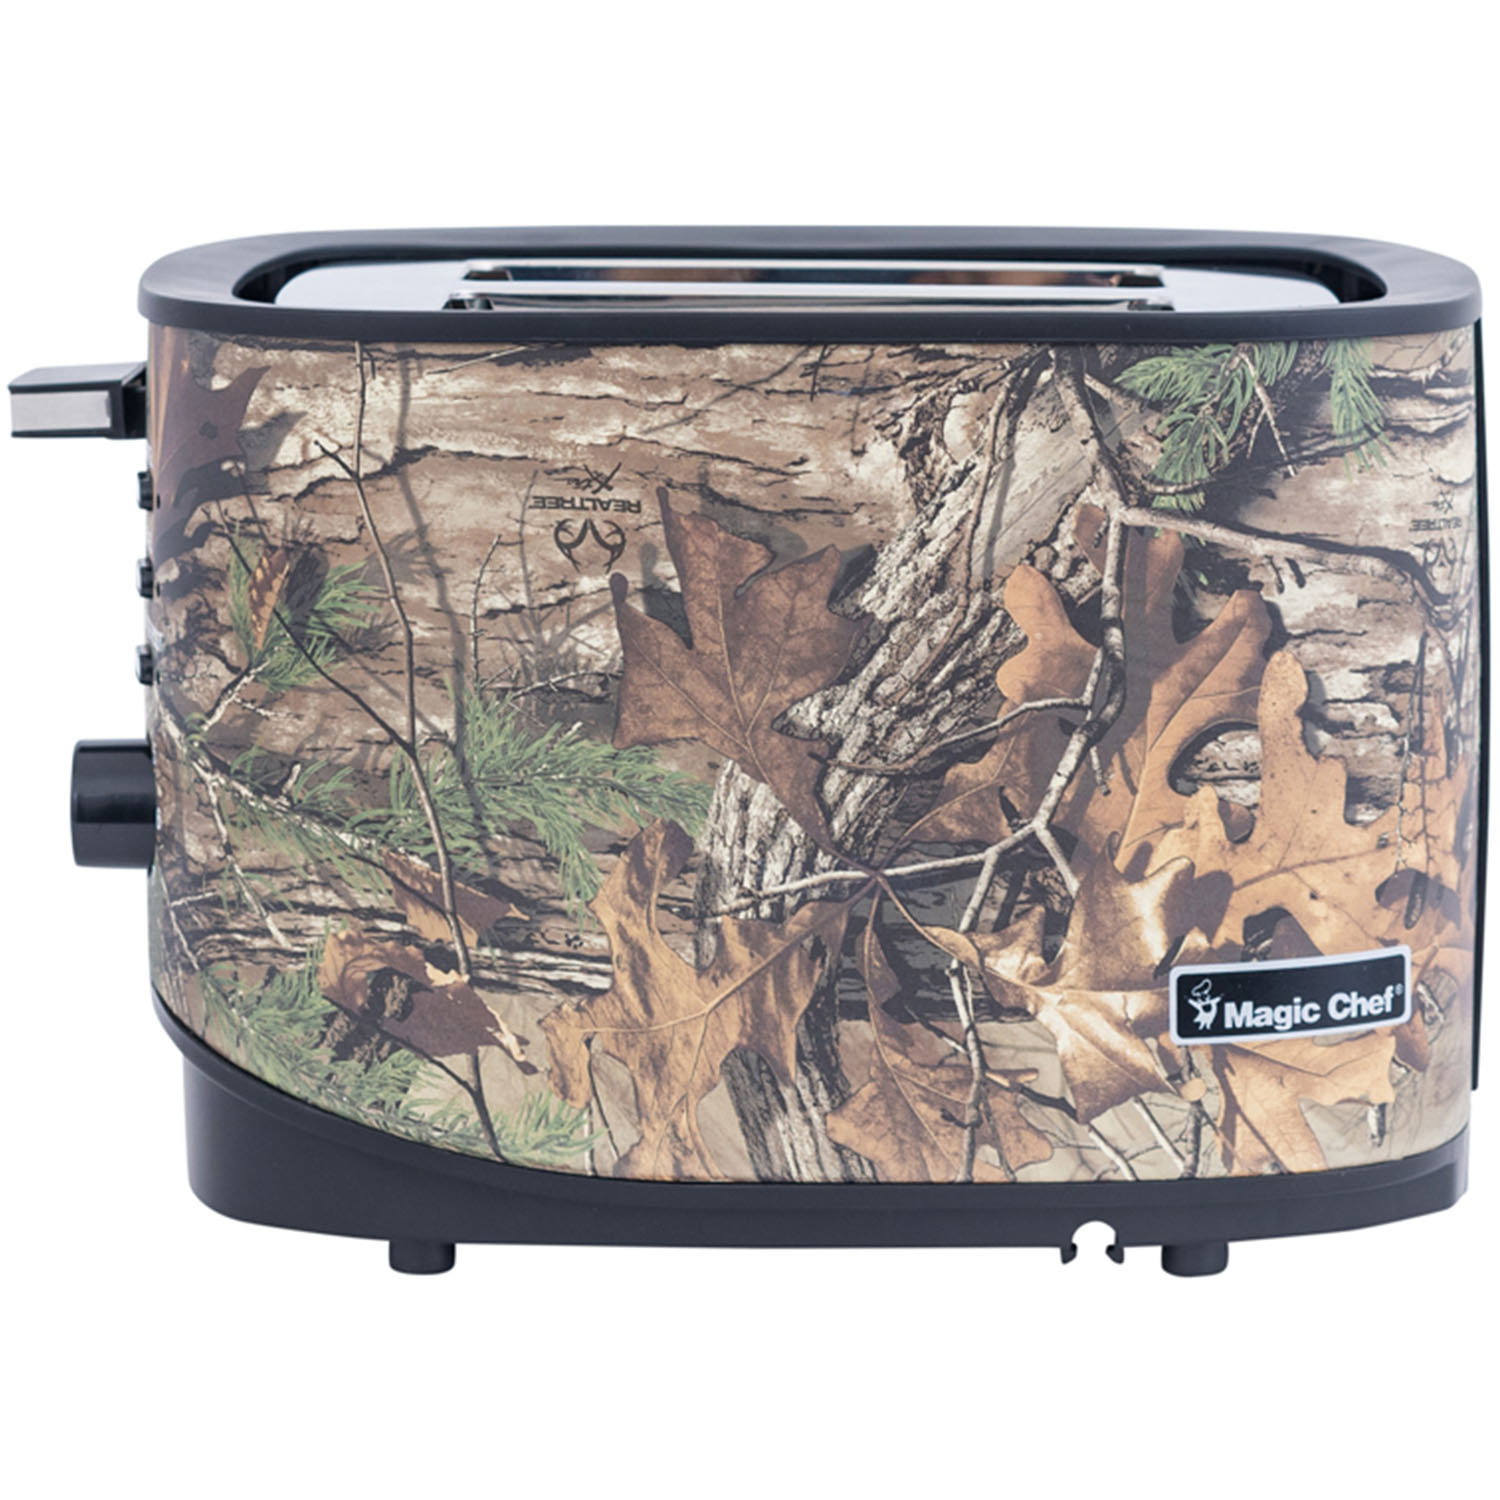 Magic Chef 2-Slice Toaster with Authentic Realtree Xtra Camouflage Pattern